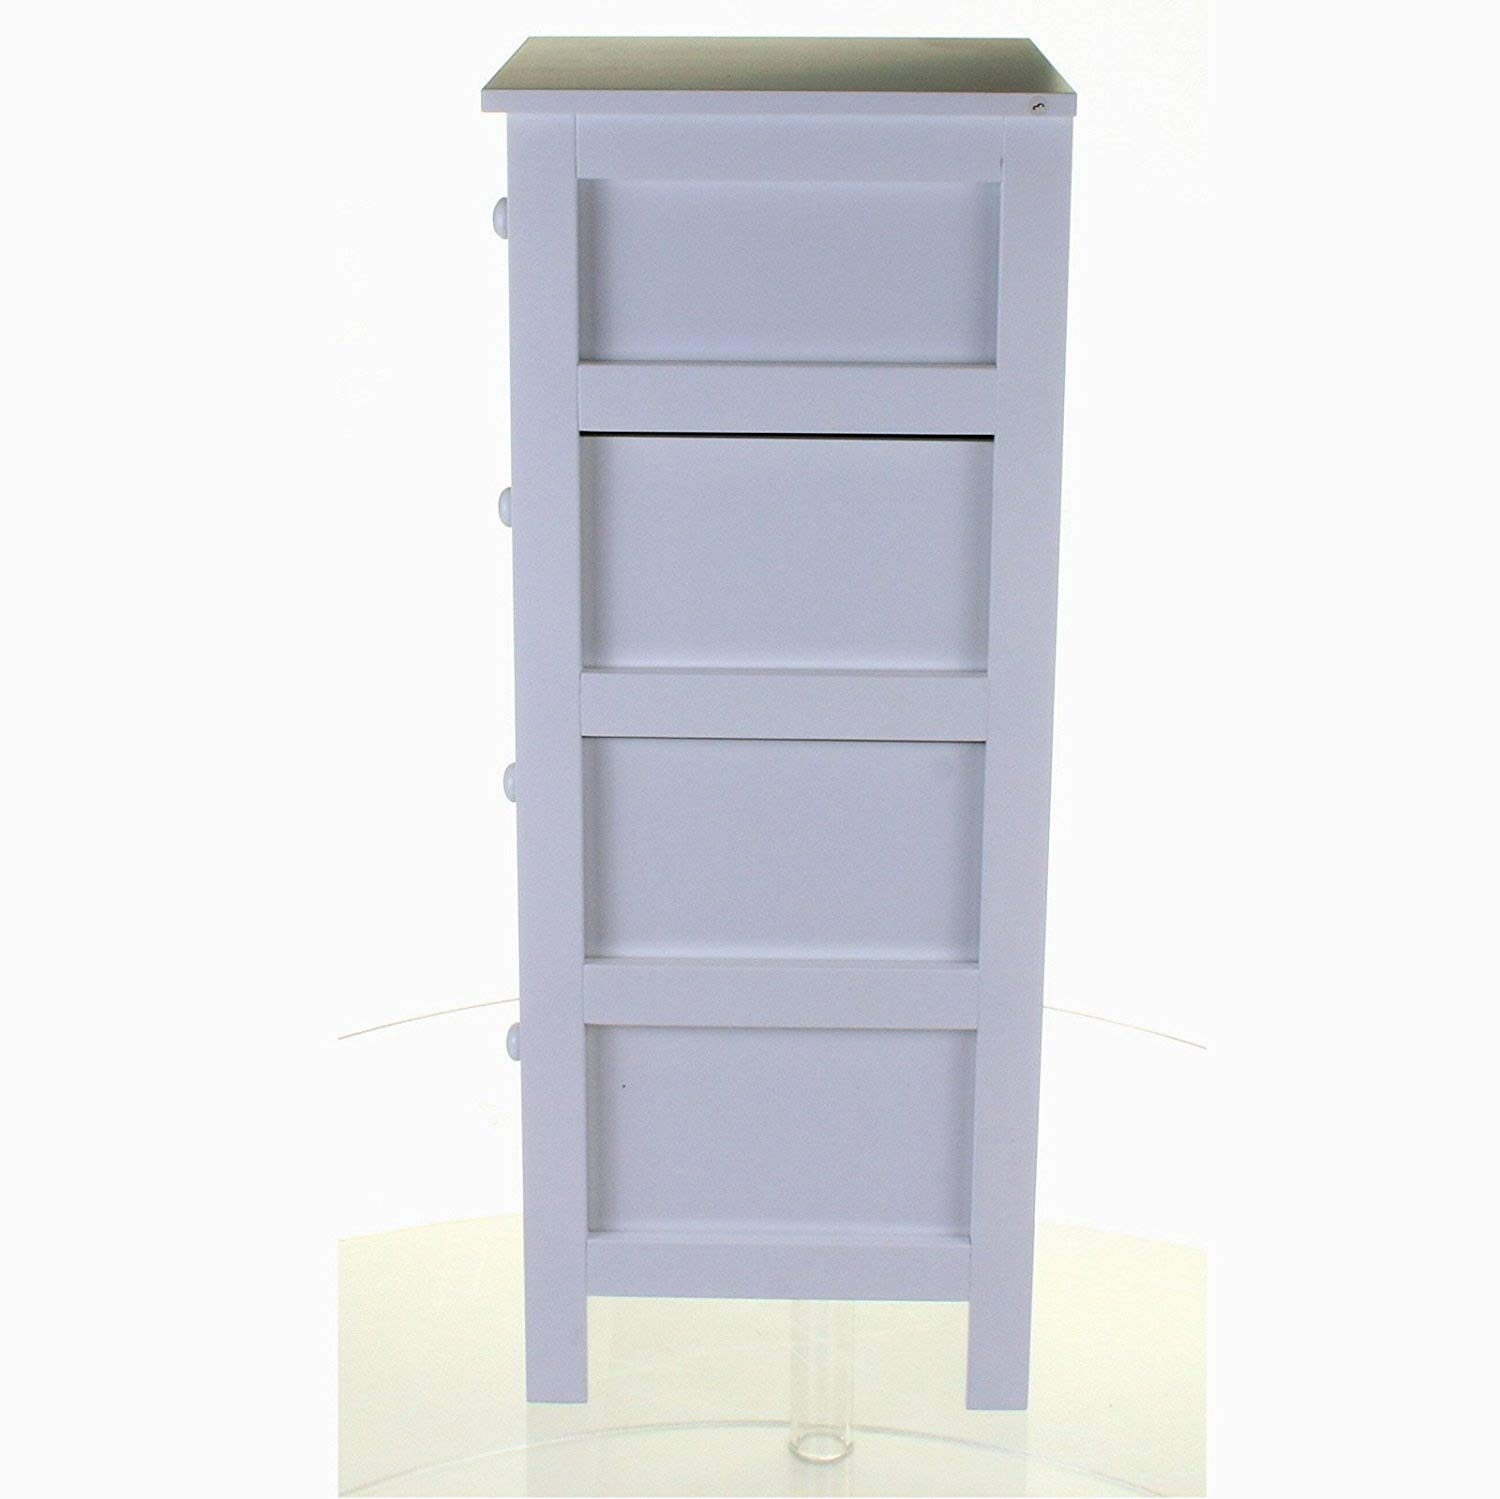 Marko Bathroom White Wooden 4 Drawer Chest Storage Unit Cupboard Dreamgenii Pregnancy And Feeding Support Pillow 933928 Draw Free Standing